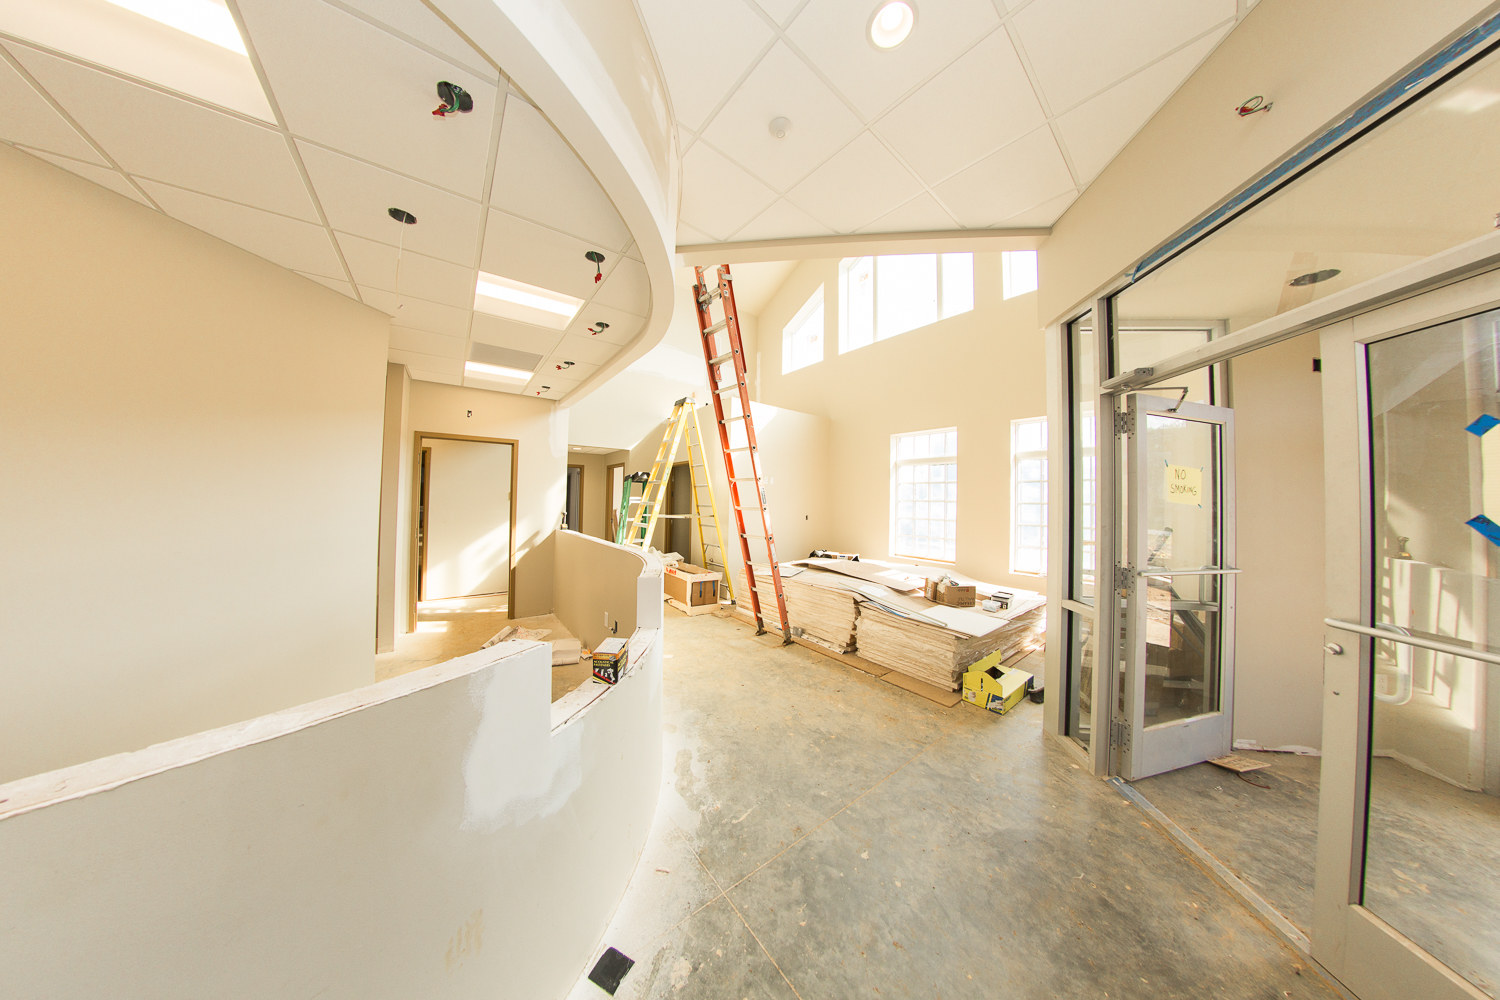 Frederick County's newest veterinary hospital's reception and waiting area.